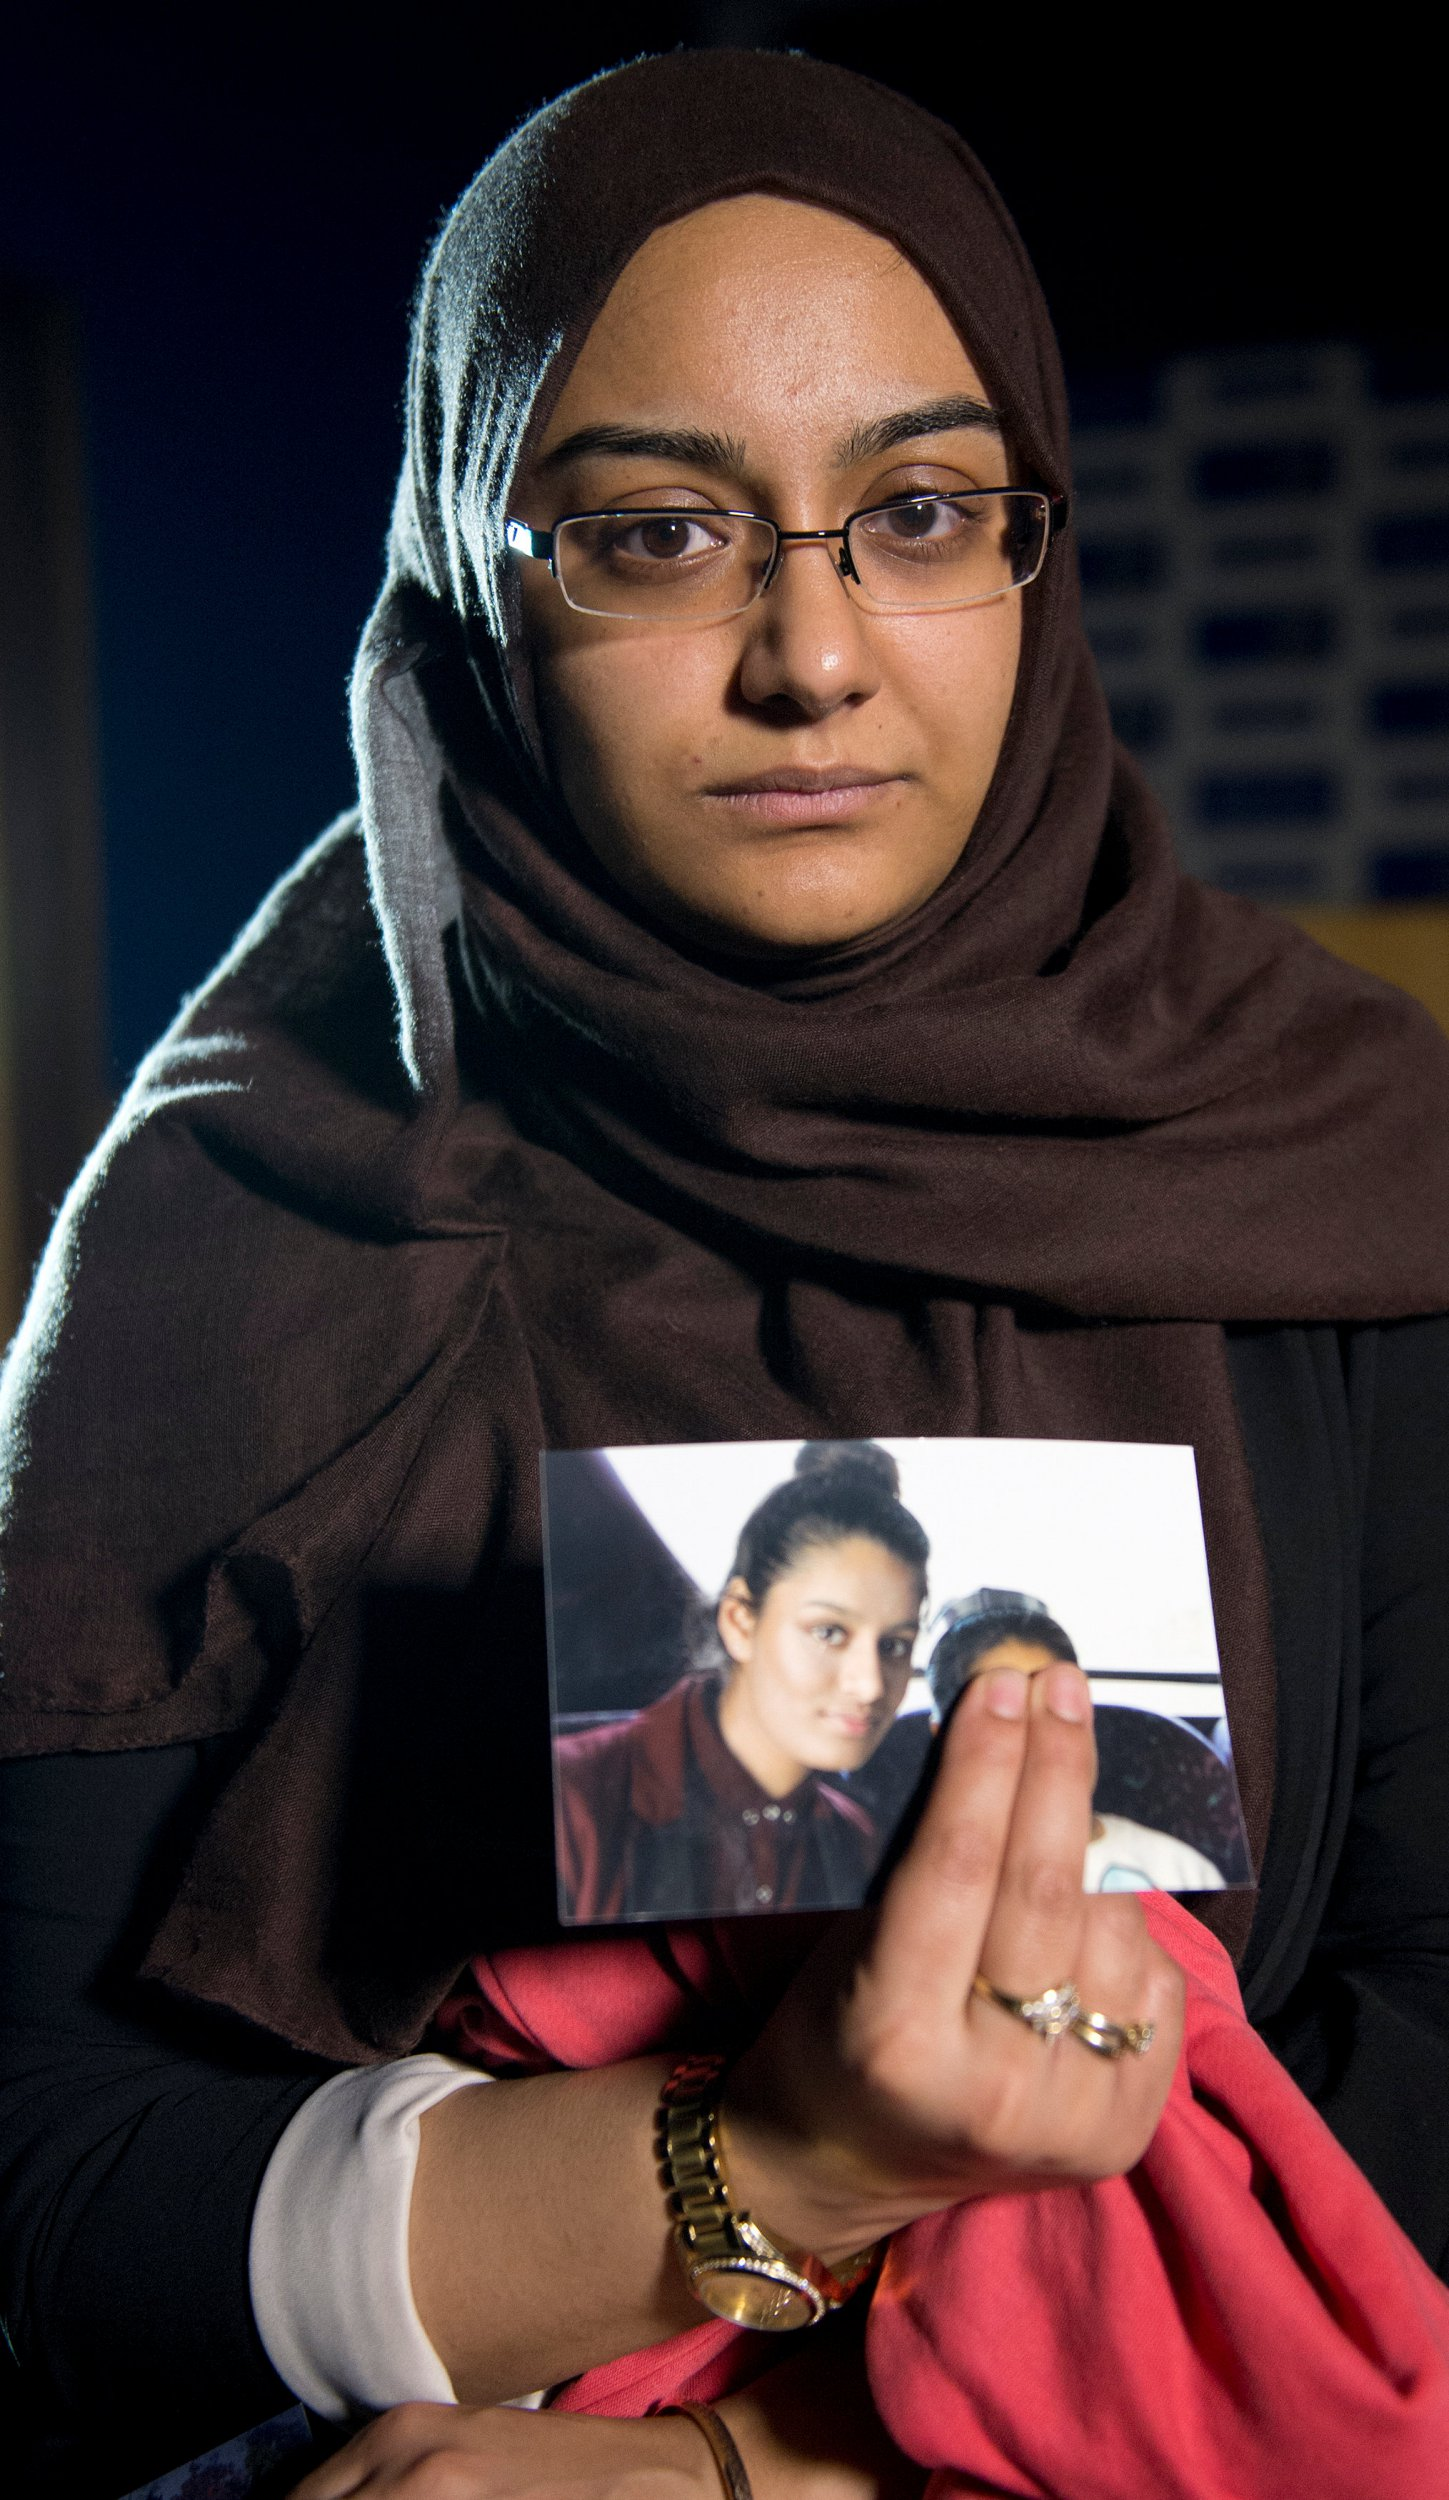 FILE PHOTO: Renu Begum, sister of teenage British girl Shamima Begum, holds a photo of her sister as she makes an appeal for her to return home at Scotland Yard, in London, Britain February 22, 2015. REUTERS/Laura Lean/Pool/File Photo